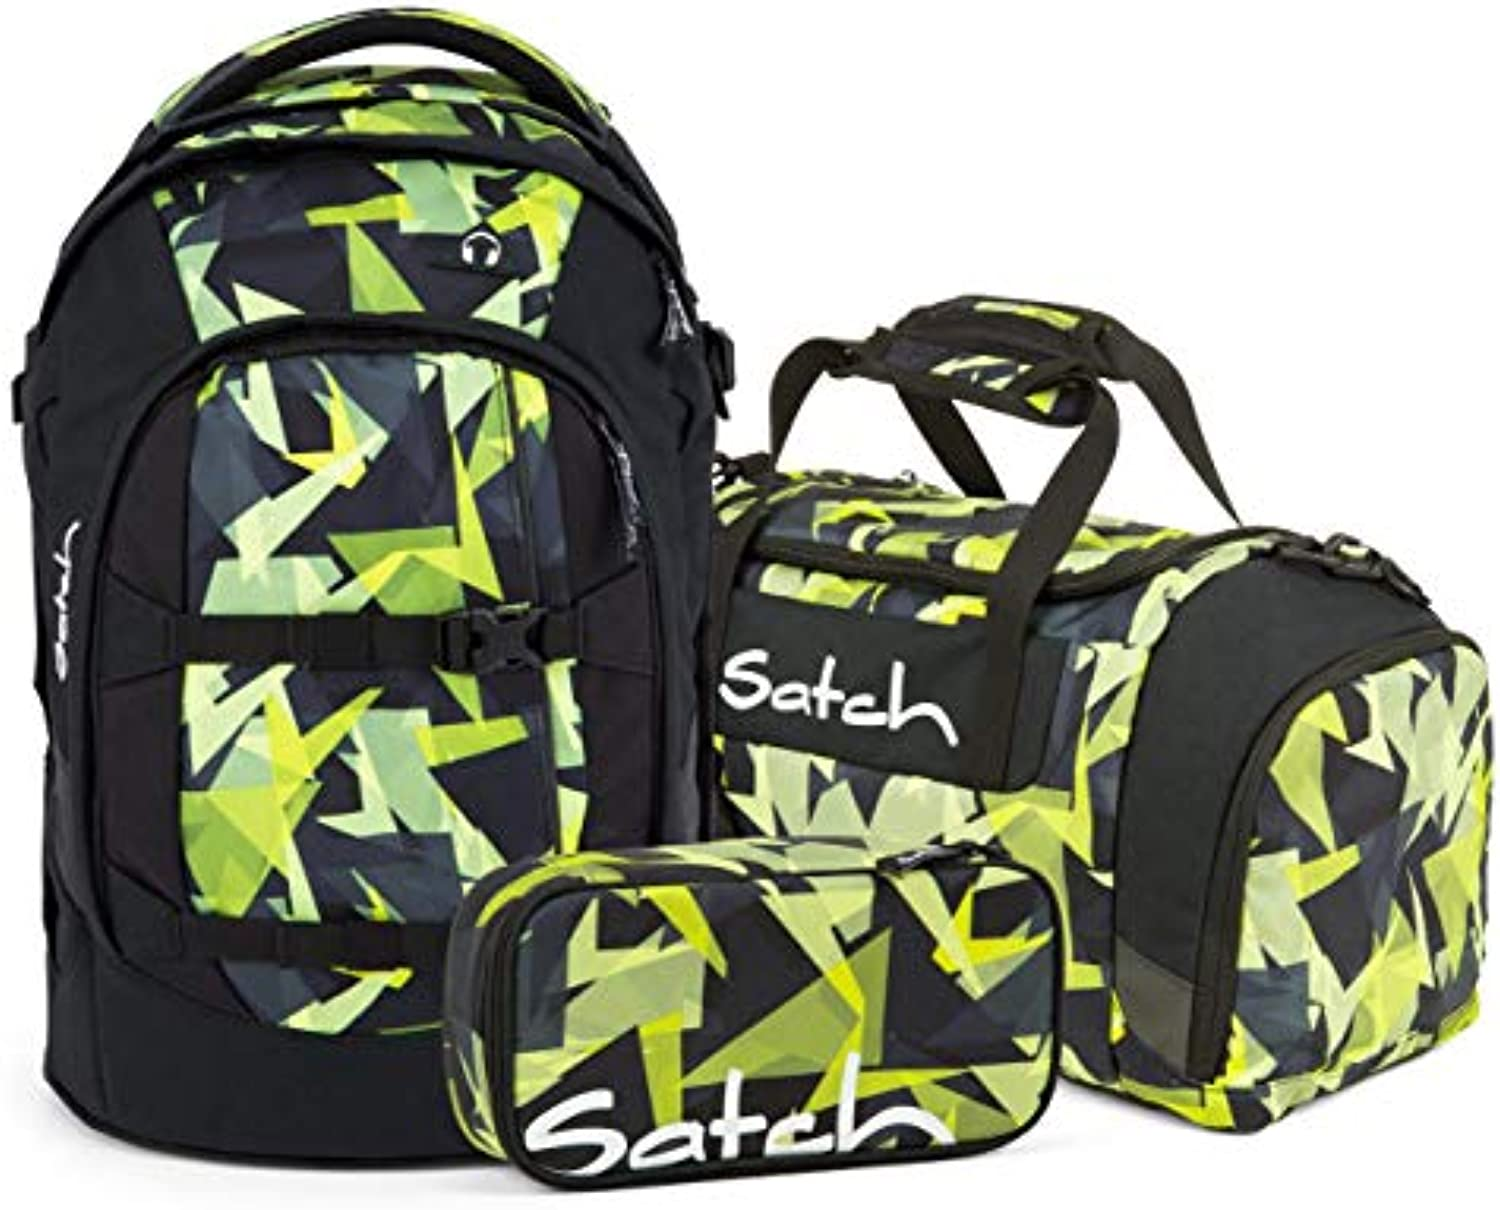 Satch Pack 3er Set Schulrucksack, Sporttasche & Schlamperbox - Gravity Jungle, 30 Liter, 1,2 kg